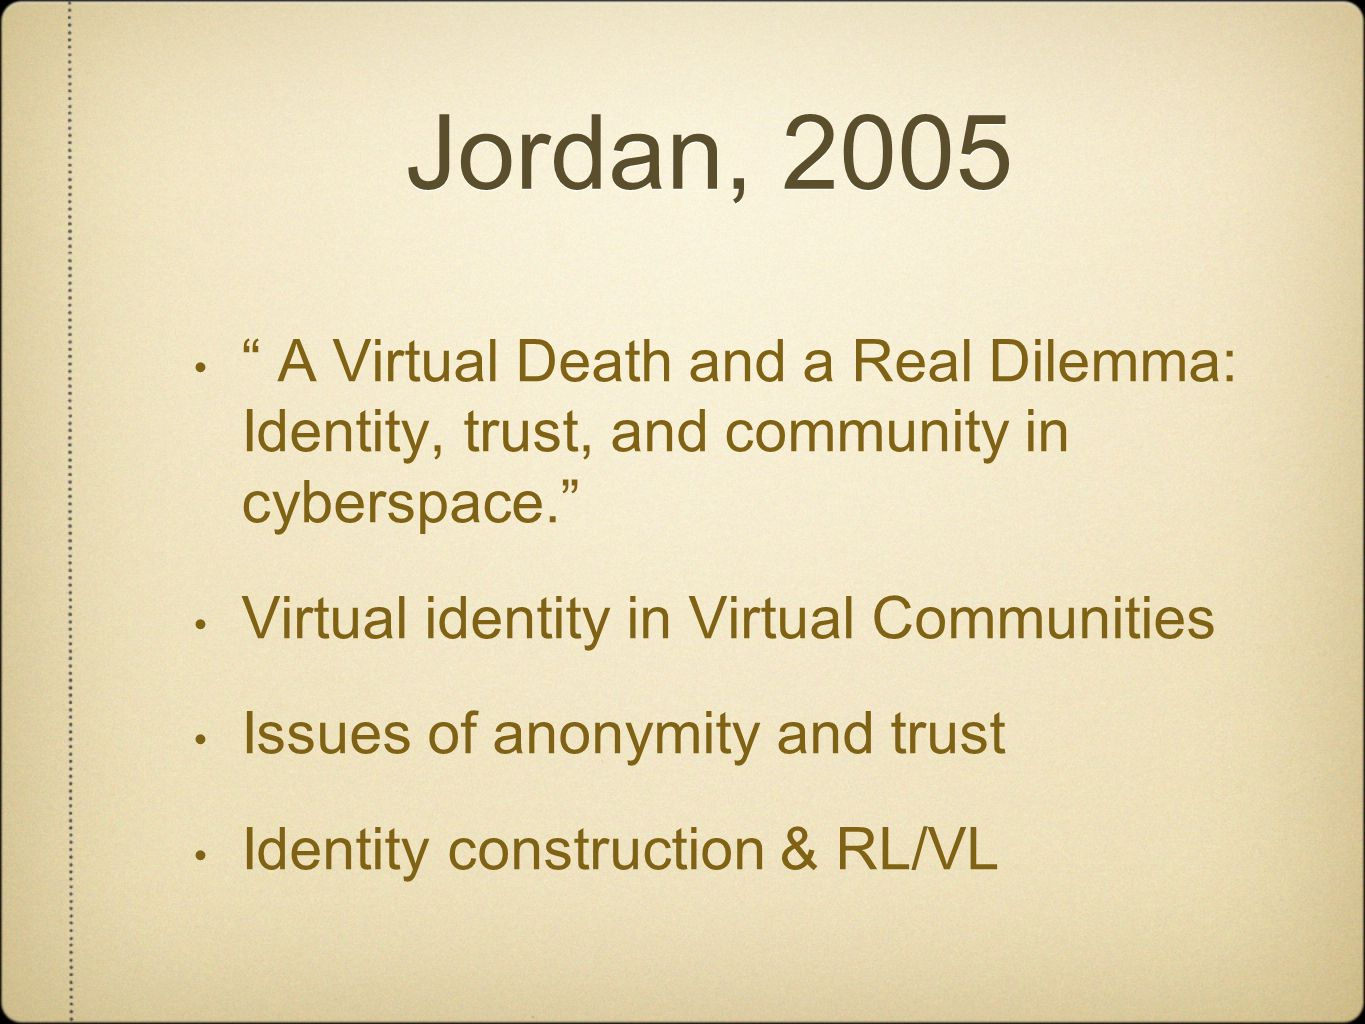 Jordan, 2005 A Virtual Death and a Real Dilemma: Identity, trust, and community in cyberspace. Virtual identity in Virtual Communities Issues of anonymity and trust Identity construction & RL/VL